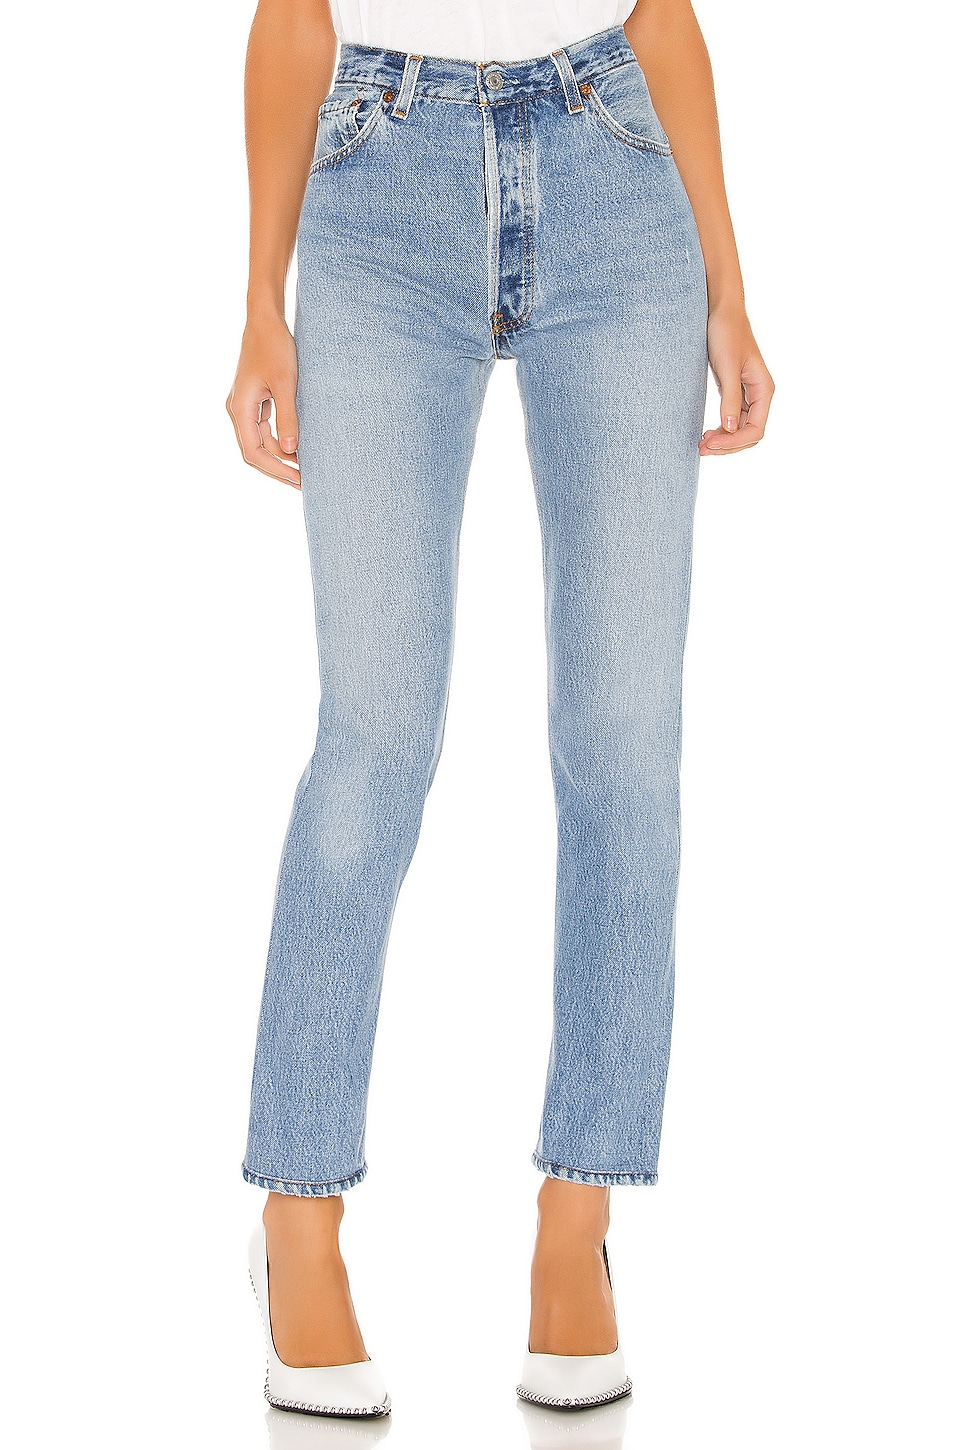 RE/DONE Levis High Rise in Indigo